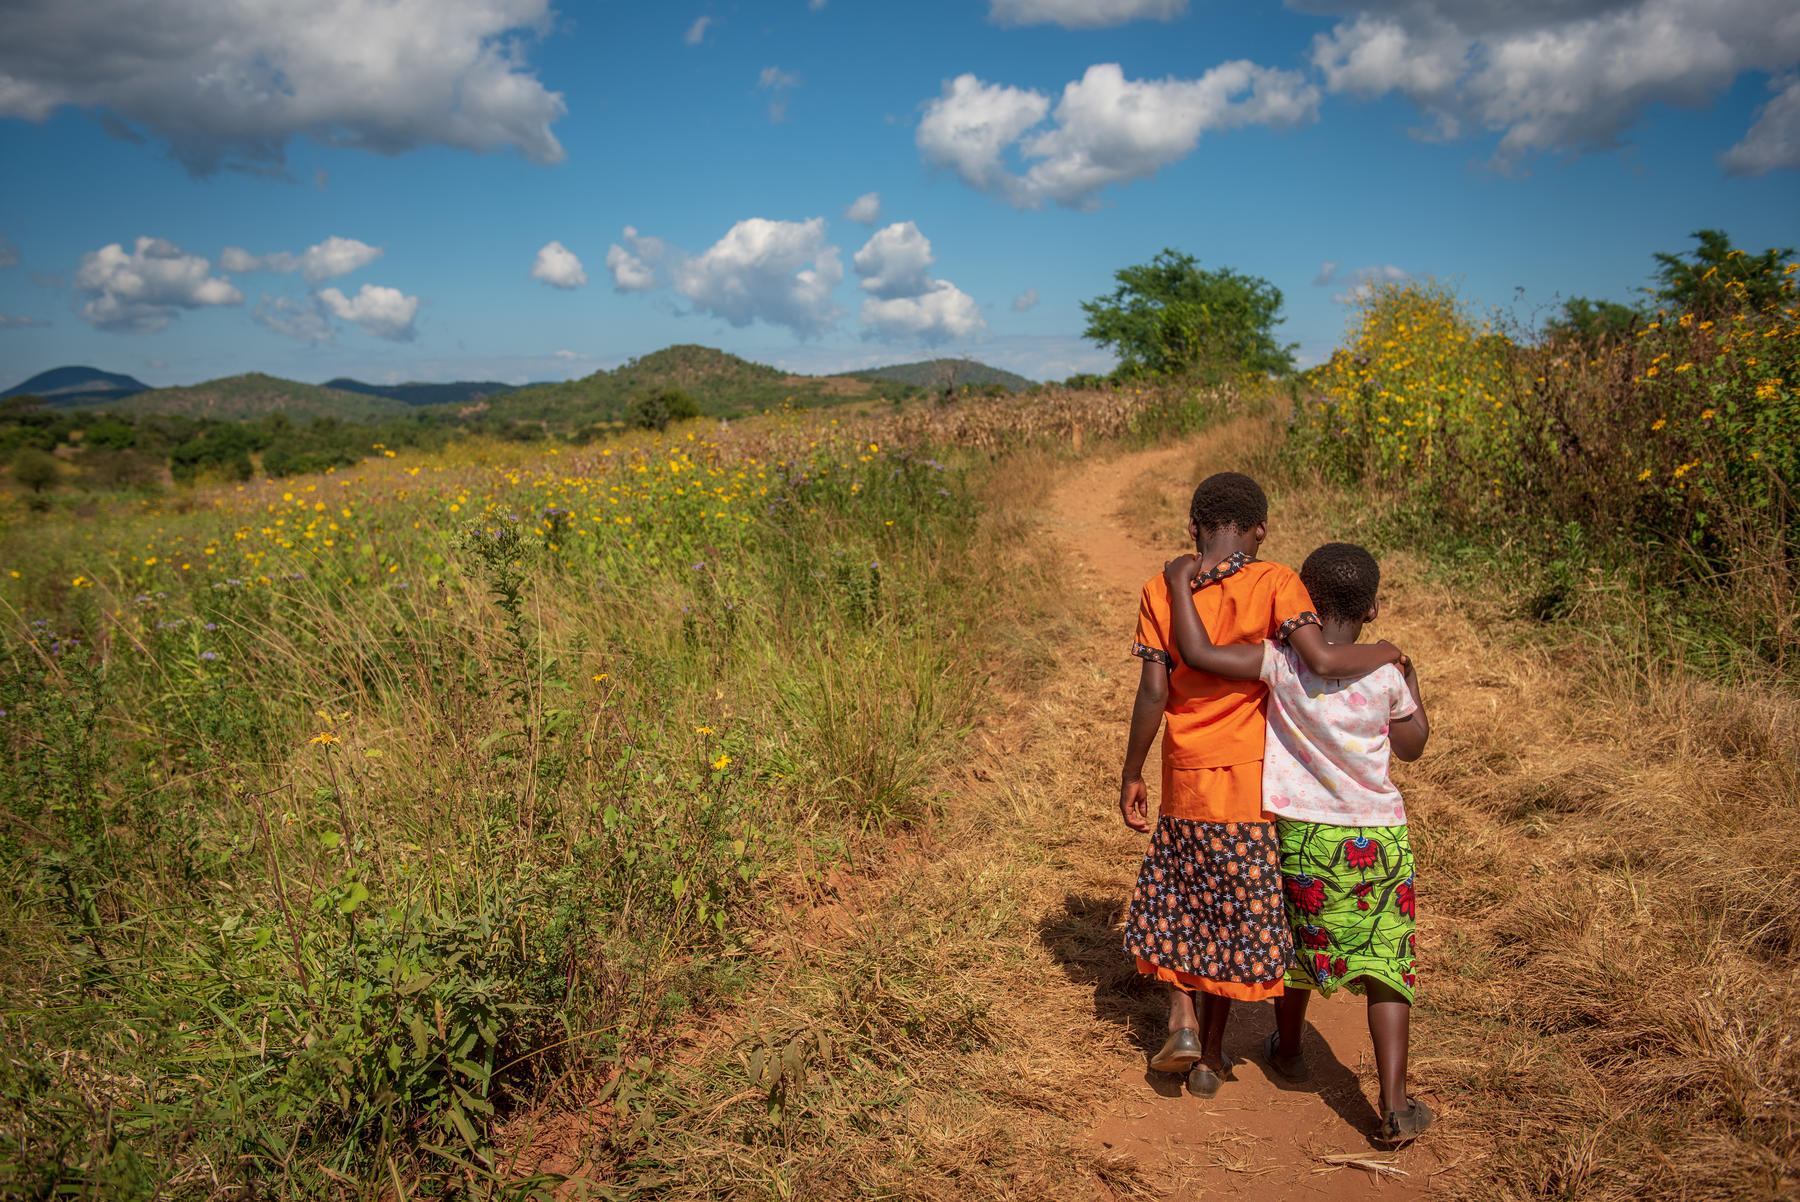 Two children walk down a road in Africa